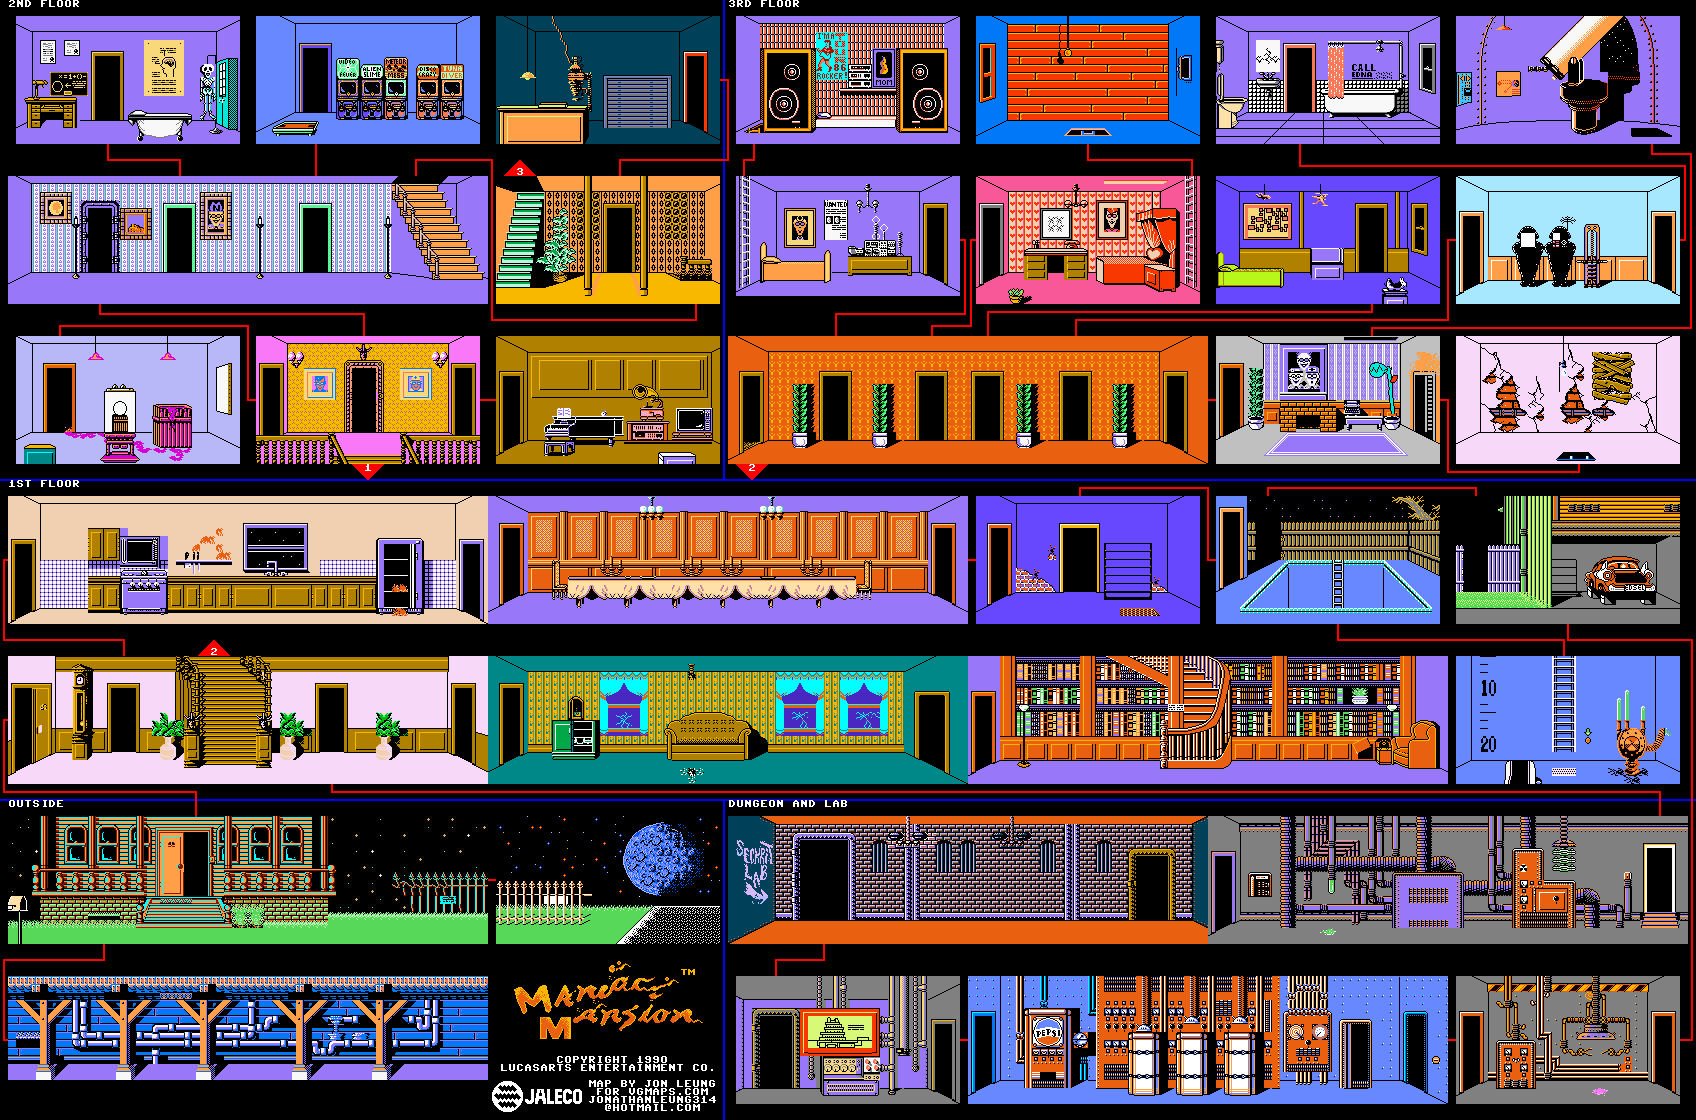 Maniac Mansion game map (NES)